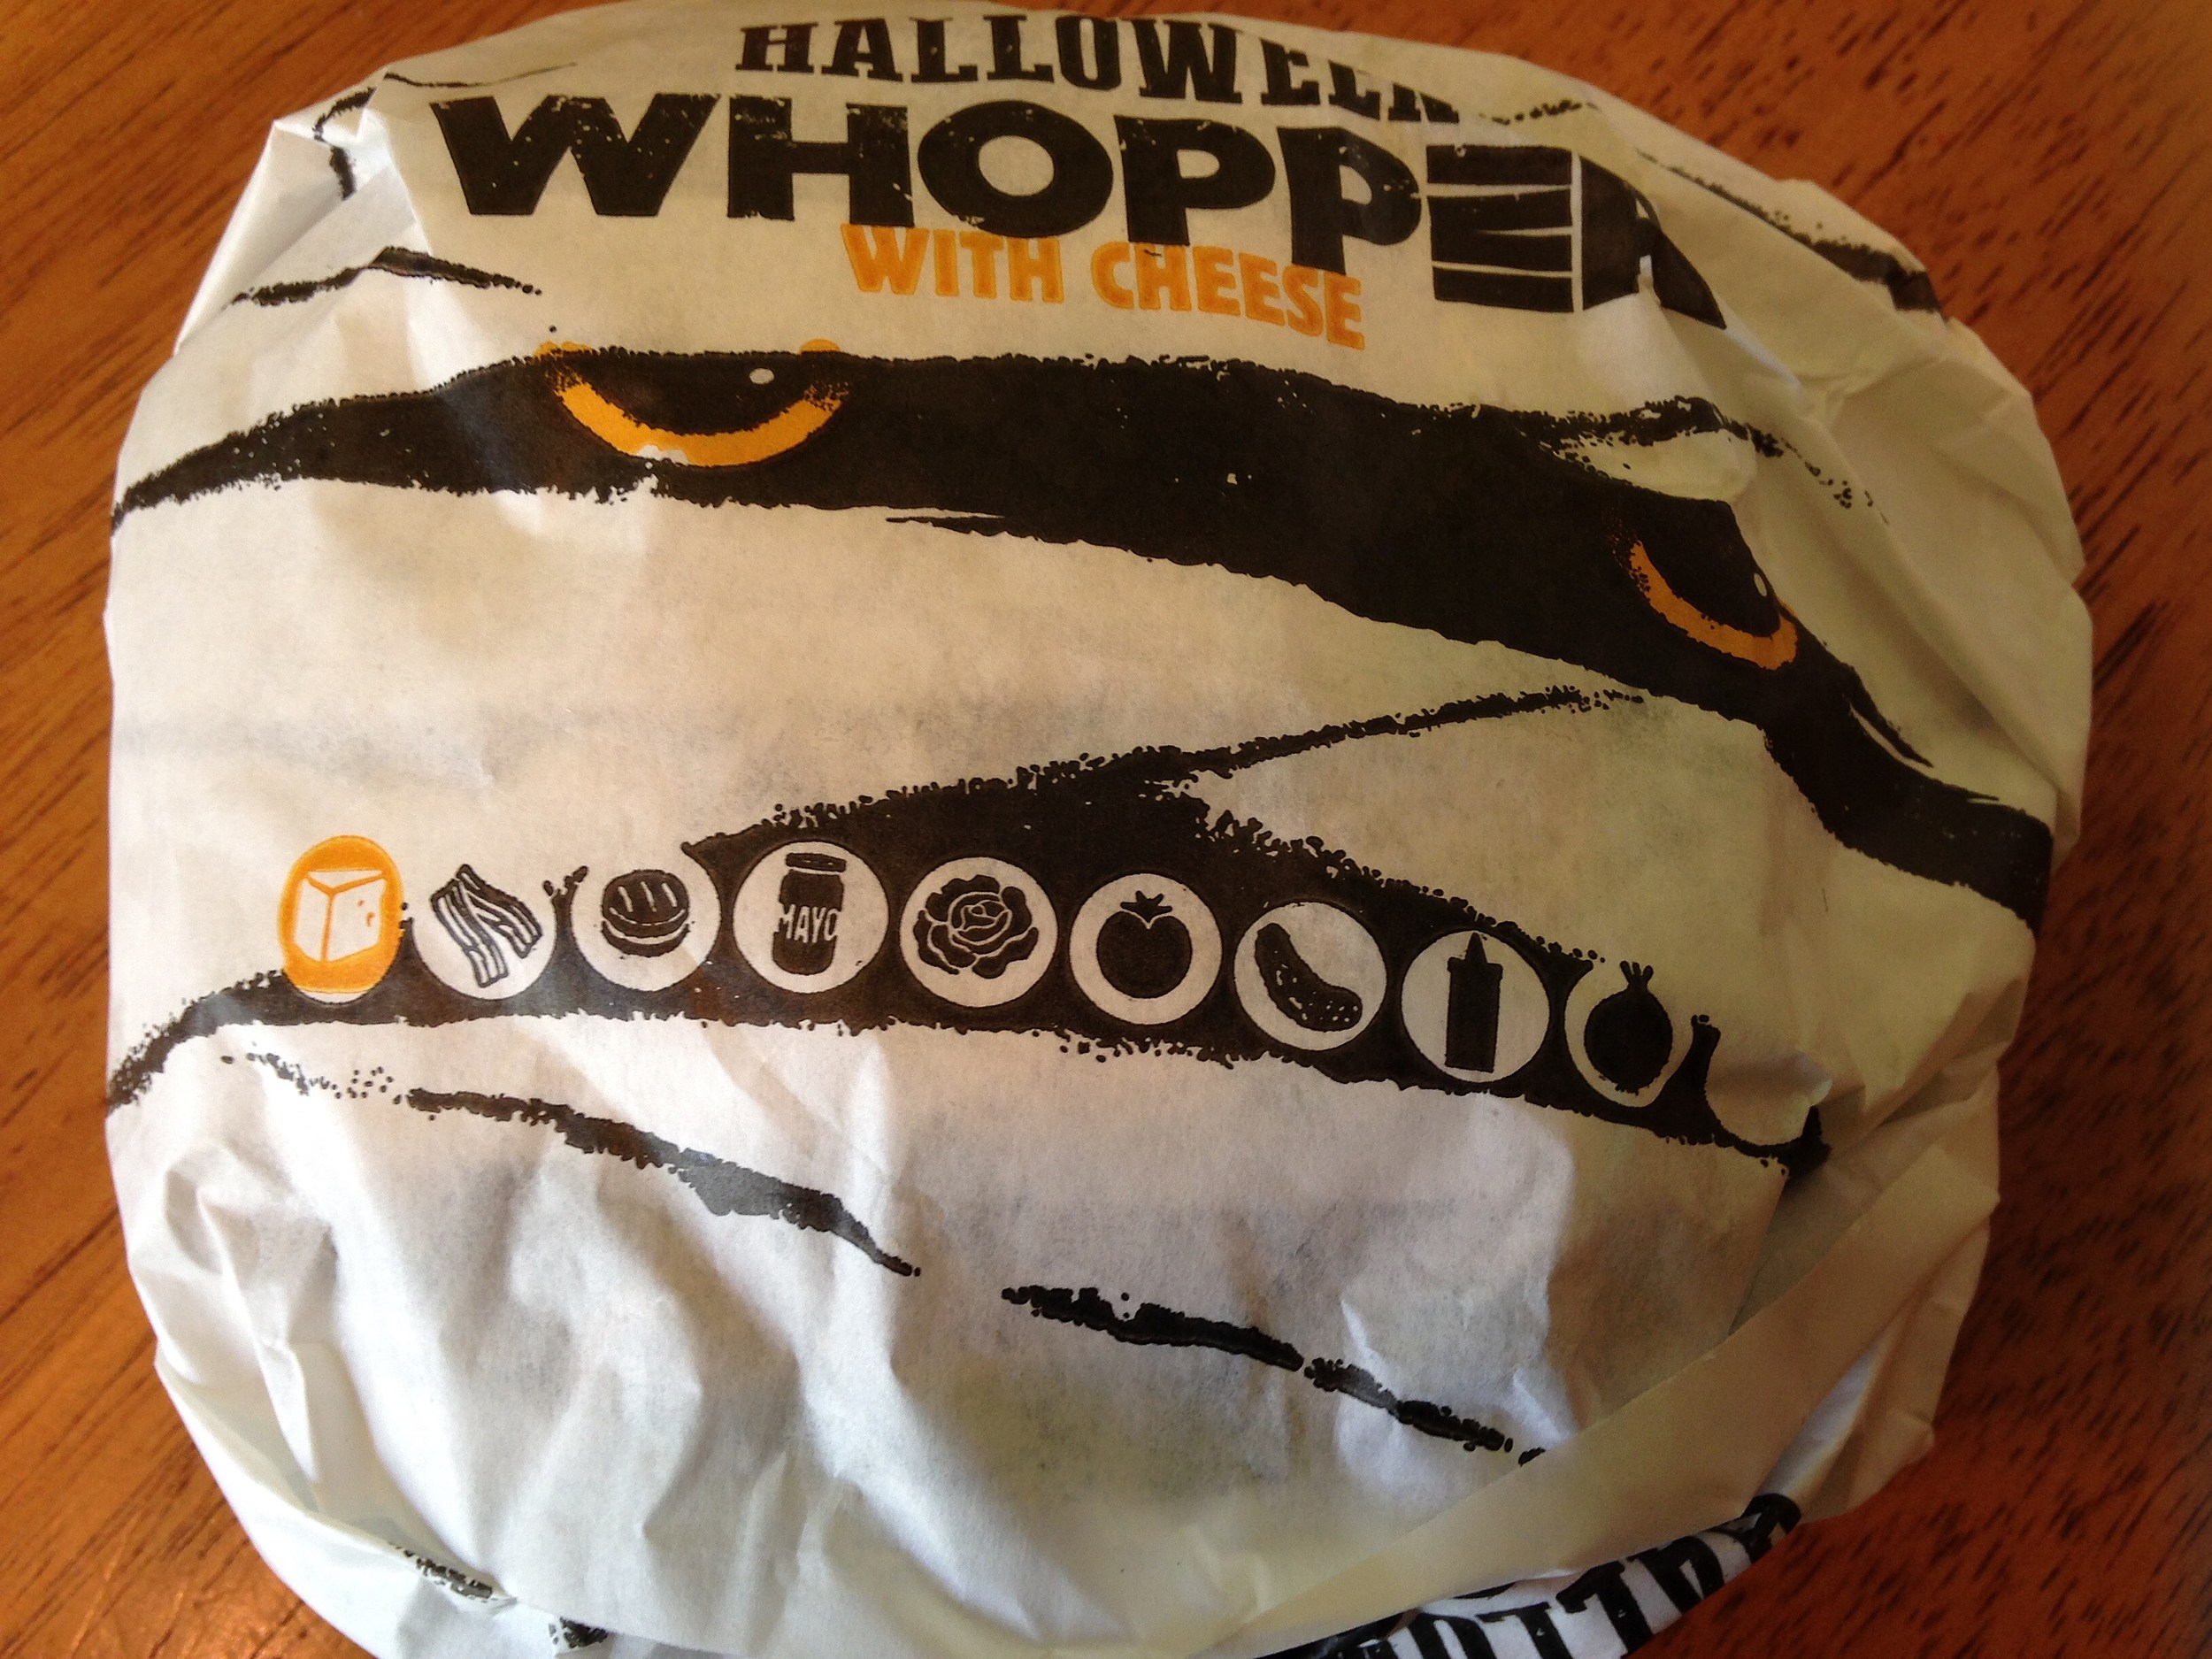 Ocean County it's the The Halloween Whopper